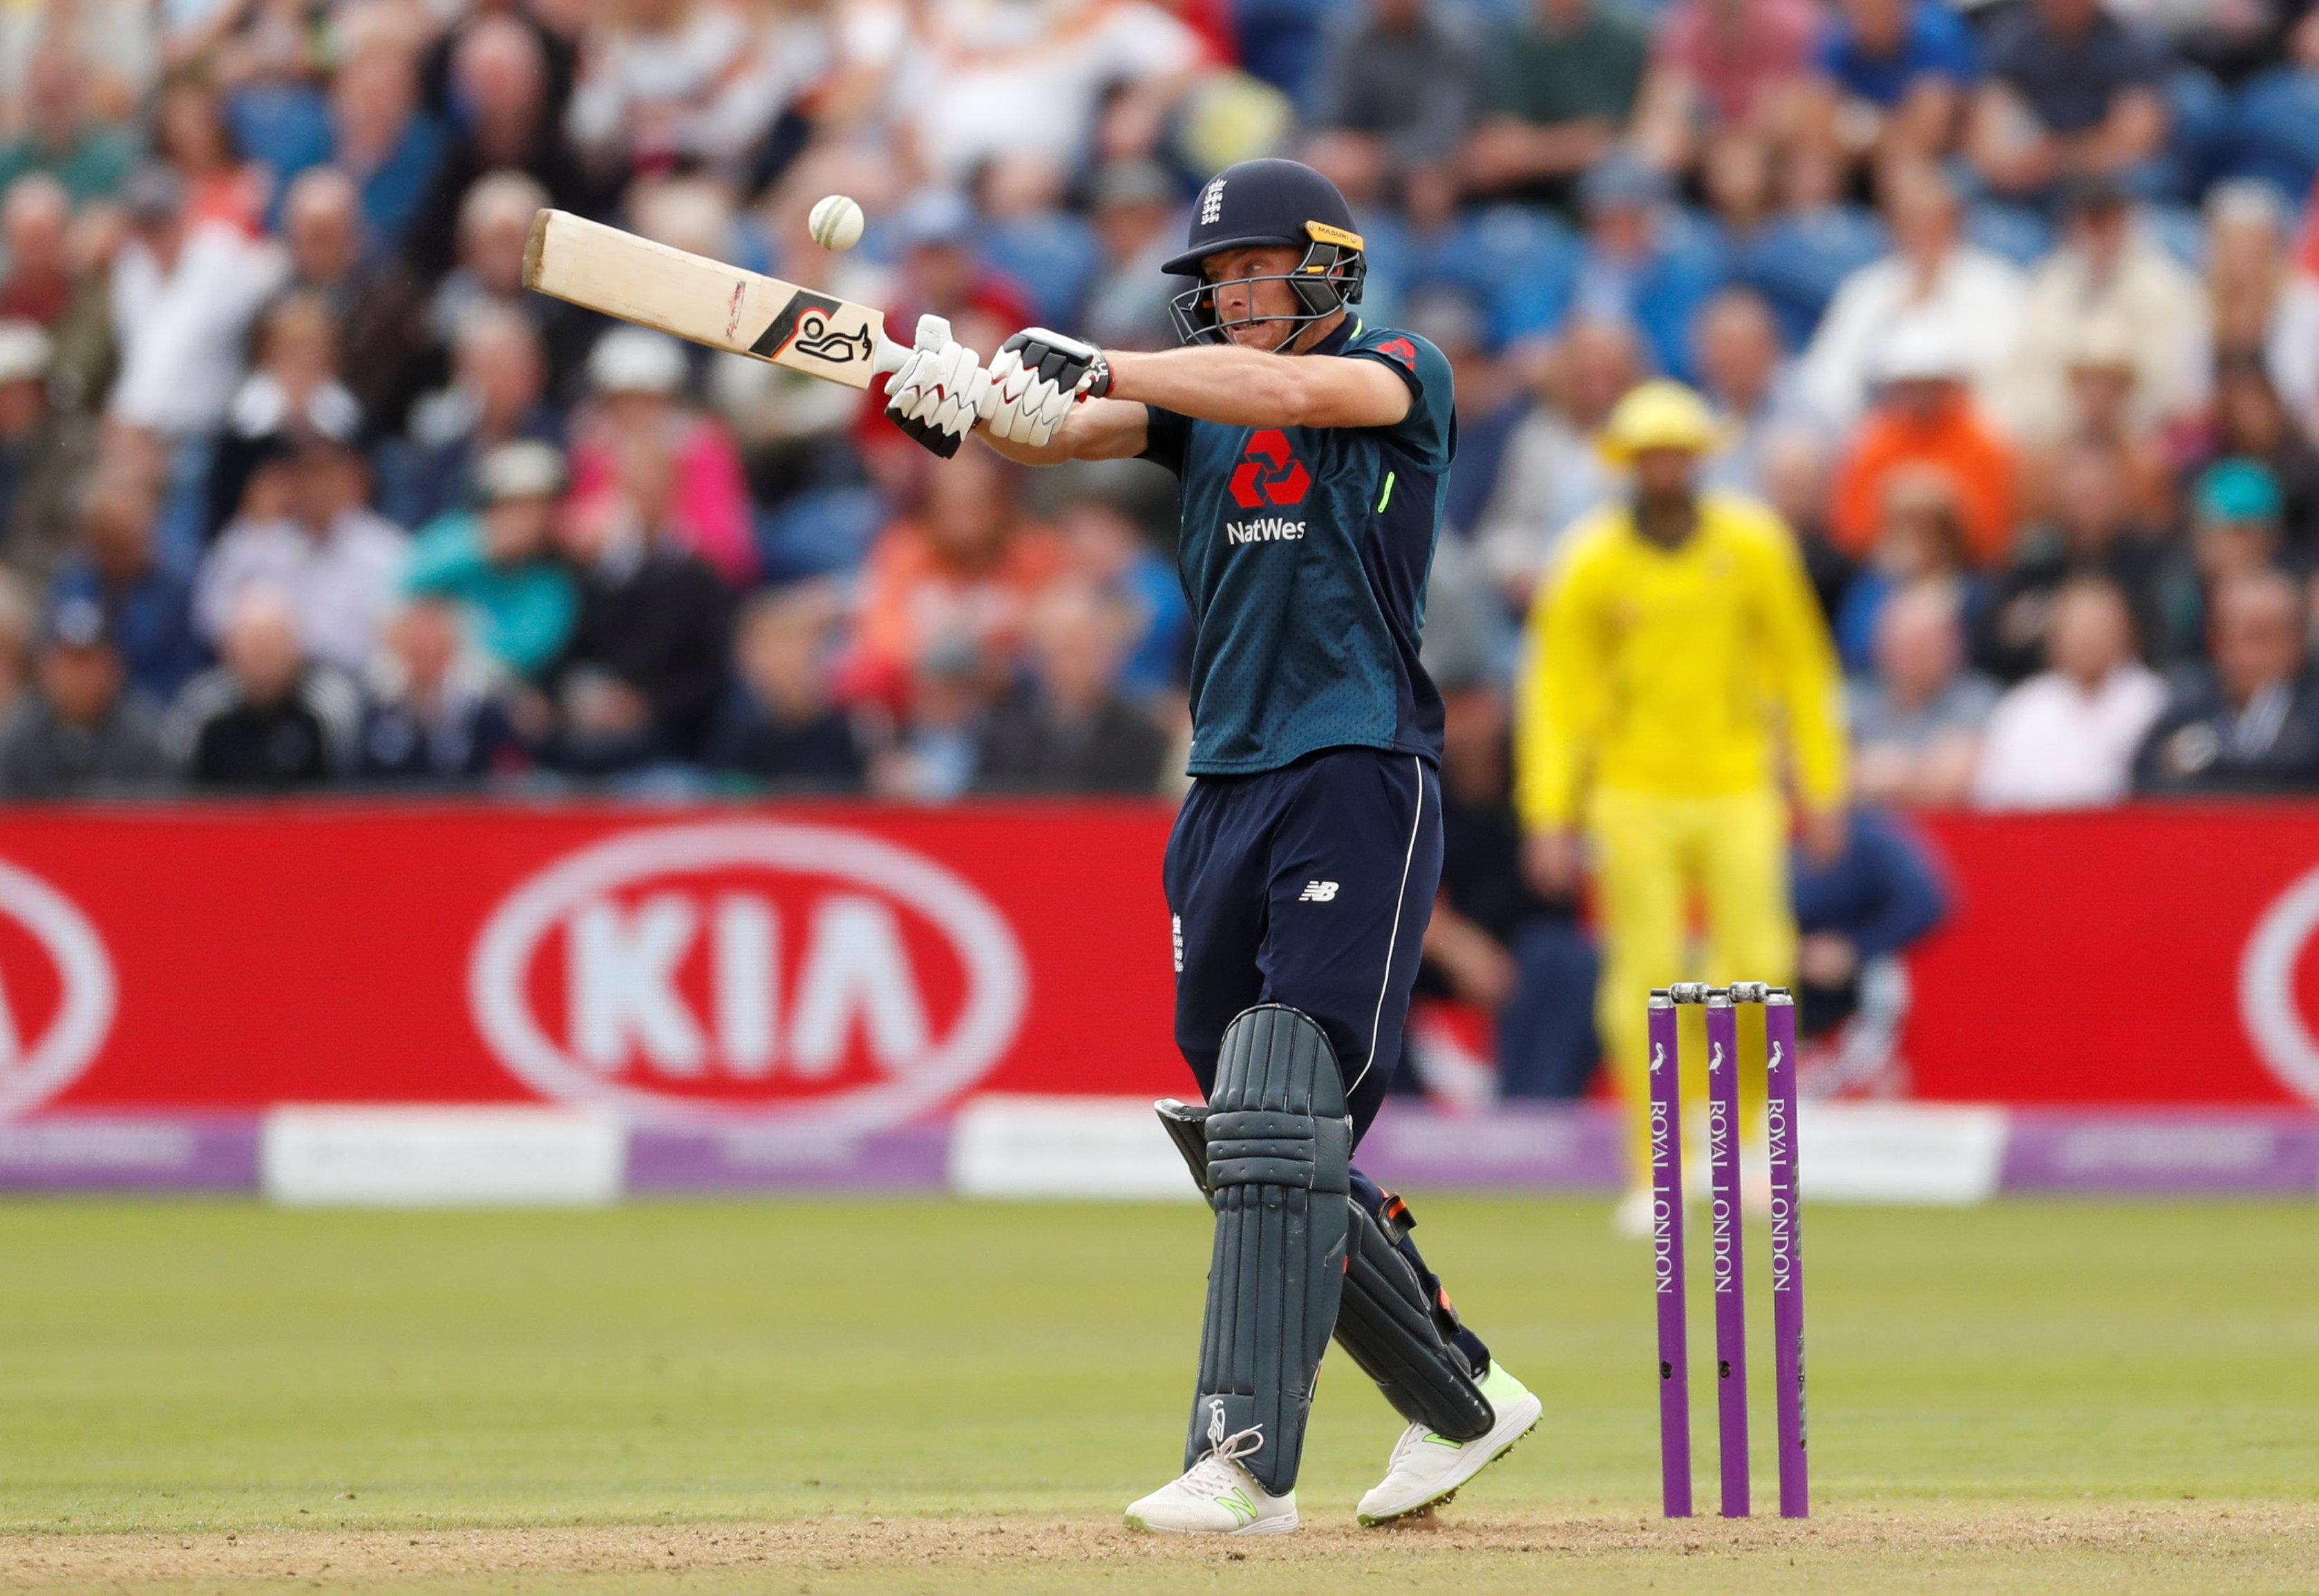 Jos Buttler smashed 91 from 70 deliveries with 10 boundaries